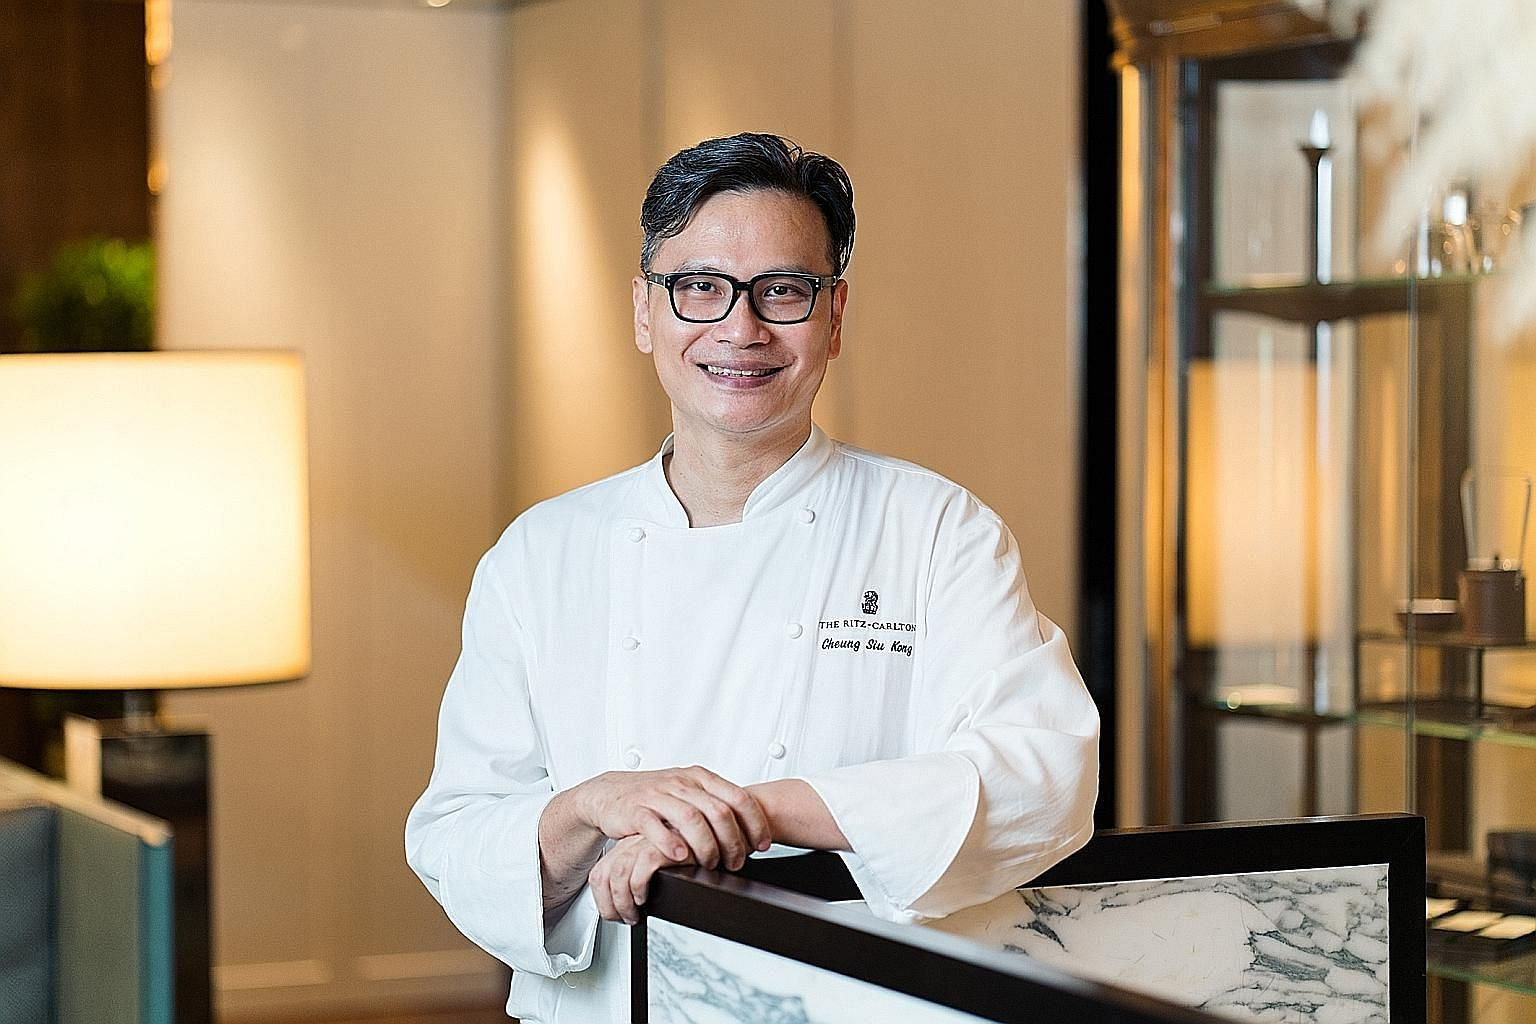 Clockwise from far left: Owner and managing director of Spring Court Soon Puay Keow, winner of the Lifetime Achievement Award; Summer Pavilion's Chinese executive chef Cheung Siu Kong, who is Chef of the Year; and Peach Blossoms' executive Chinese ch